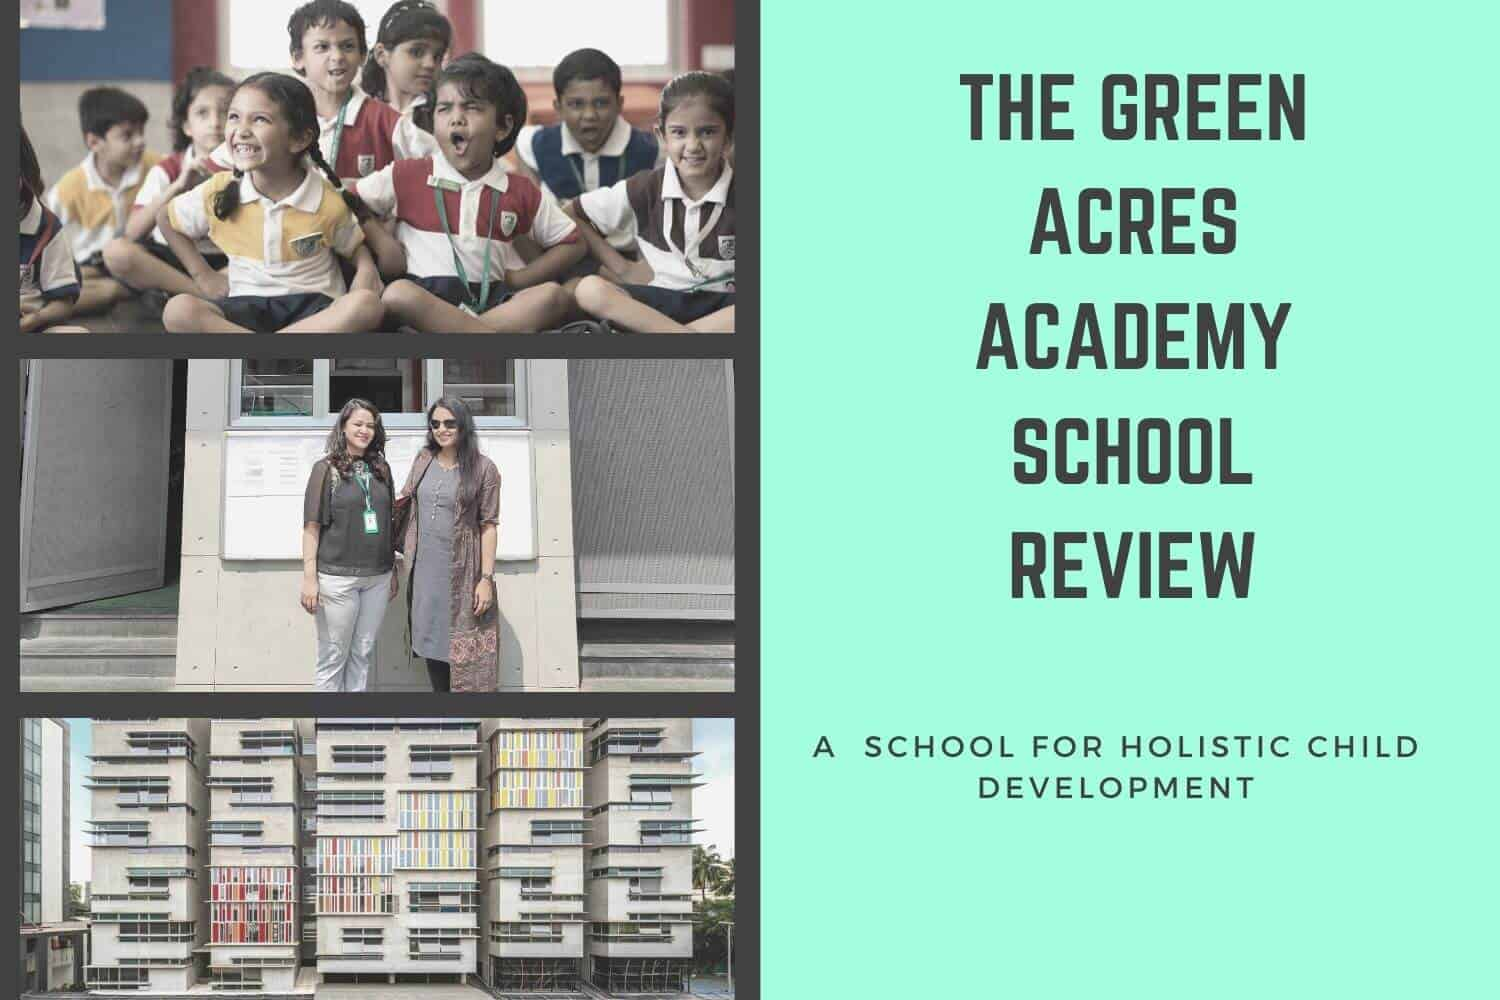 The Green Acres Academy School Review